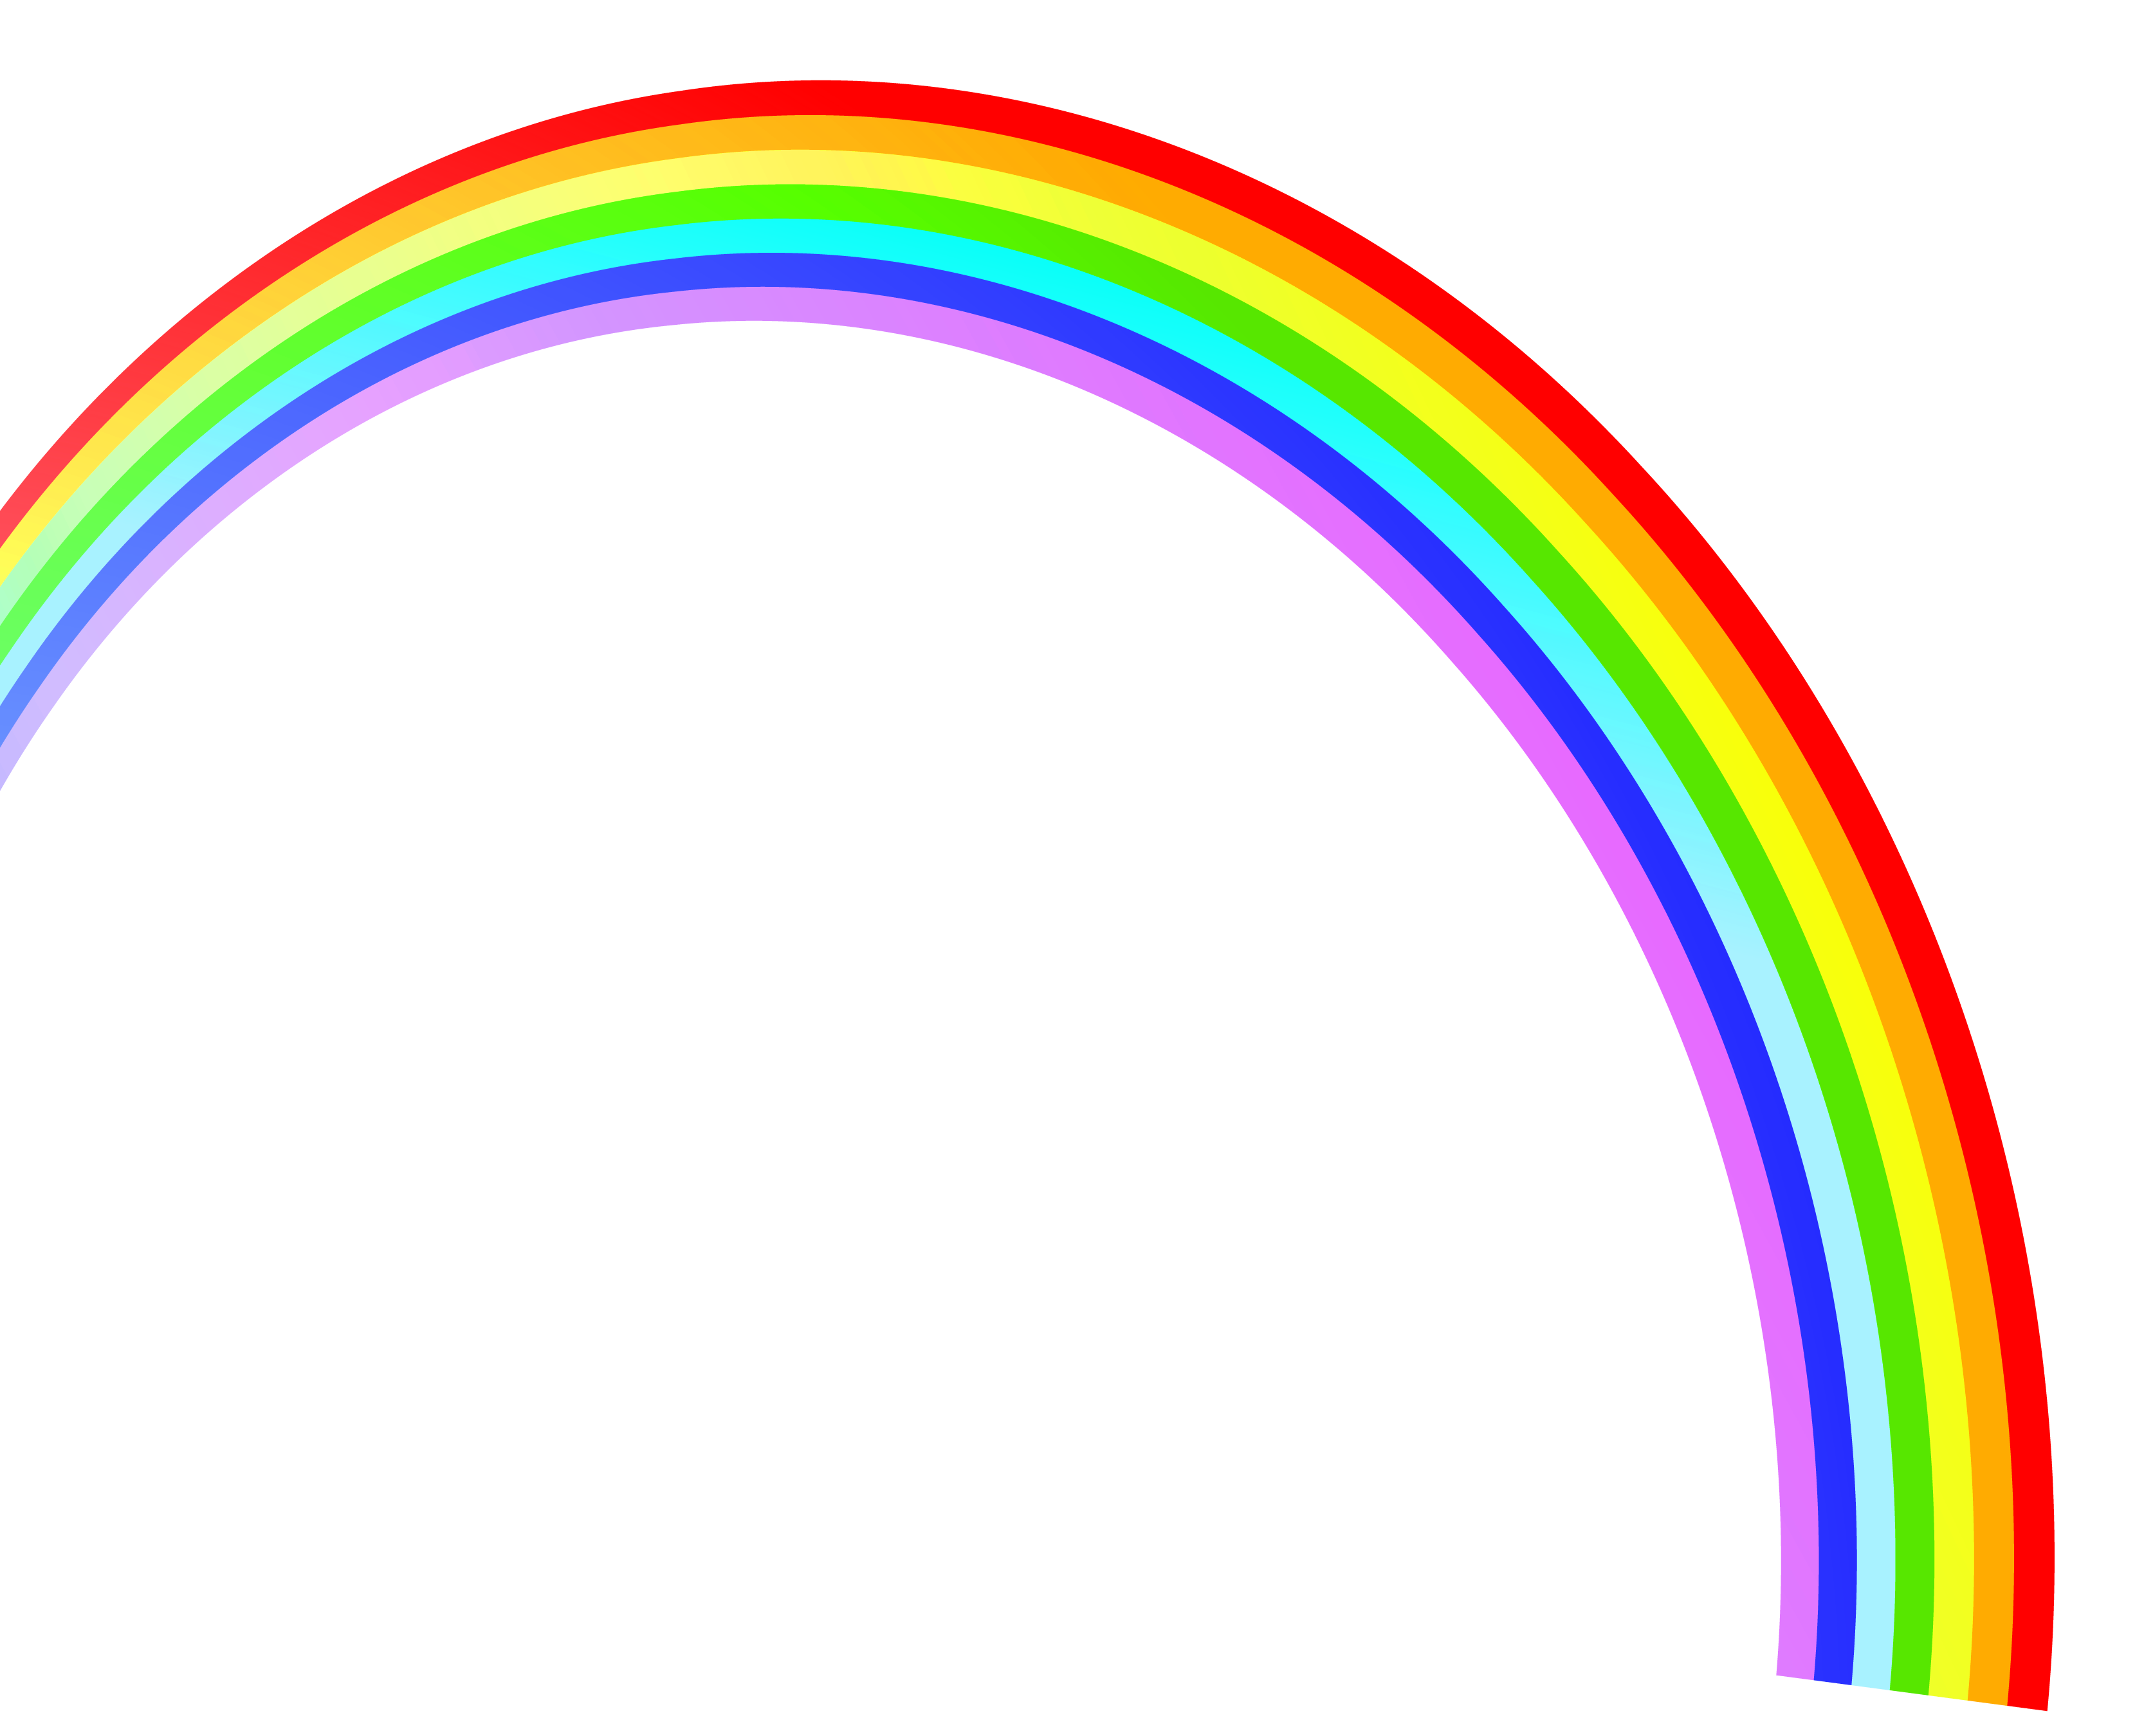 Png frames borders rainbowclipartpng. Worm clipart rainbow